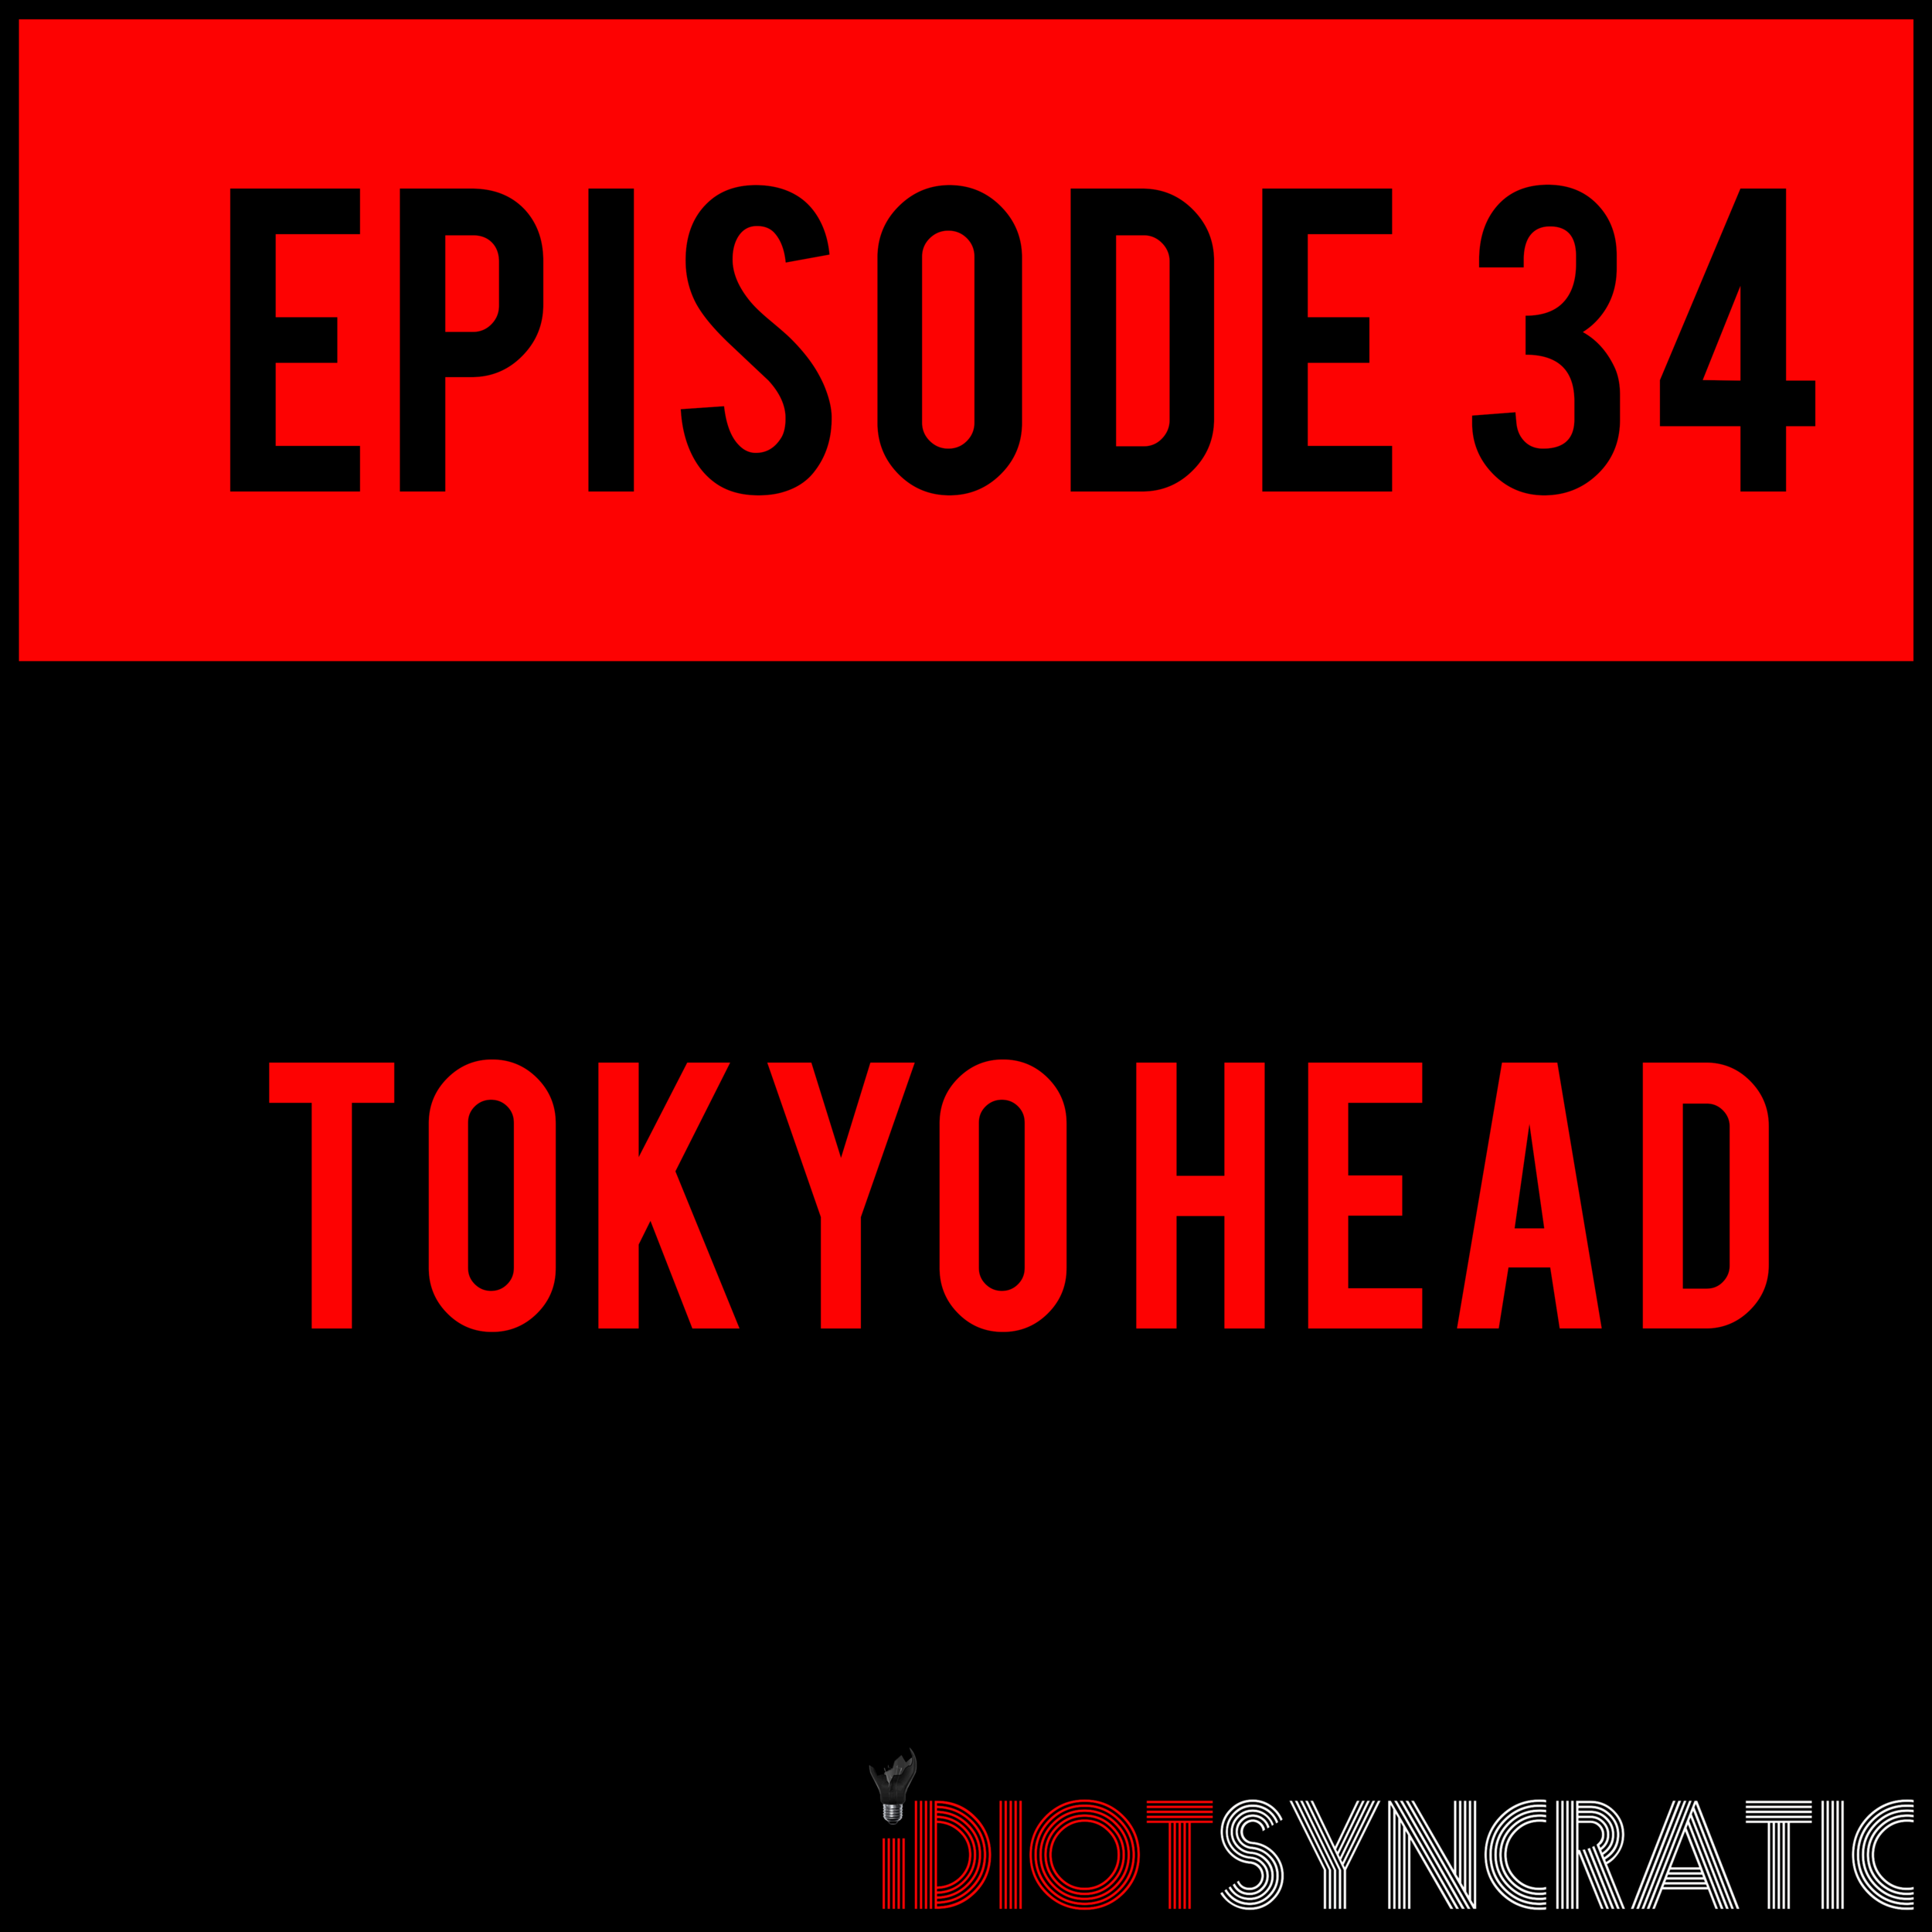 EPISODE 34 - TOKYO HEAD - EPISODE 34 with Ashley Hays is up! Listen to us talk about nerds in American basements and across the pond!